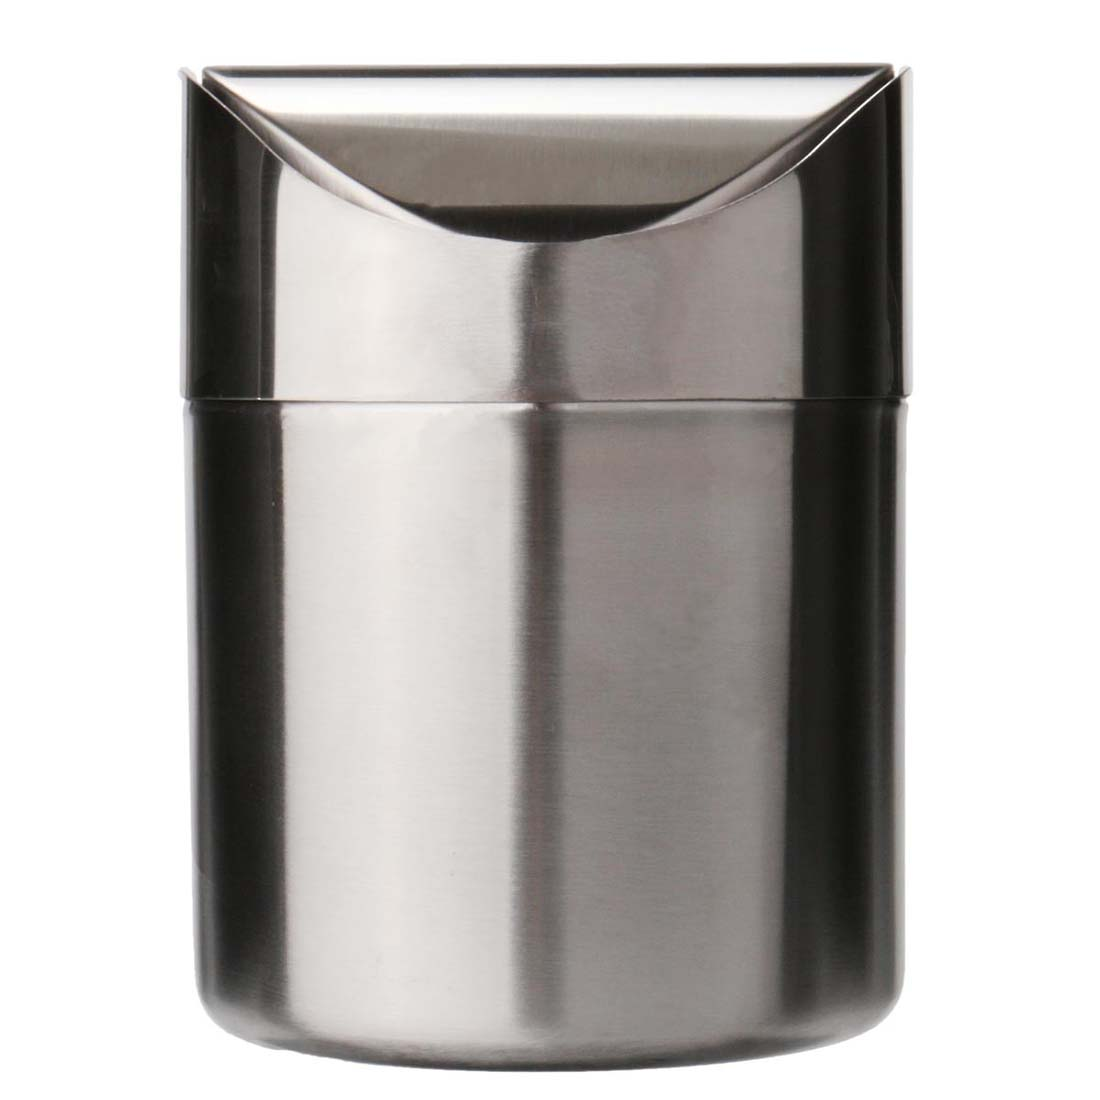 NOCM Hot Stainless Steel 1.5L Mini Worktop Kitchen Waste Dust Bin Rubbish With Swing Lid ...